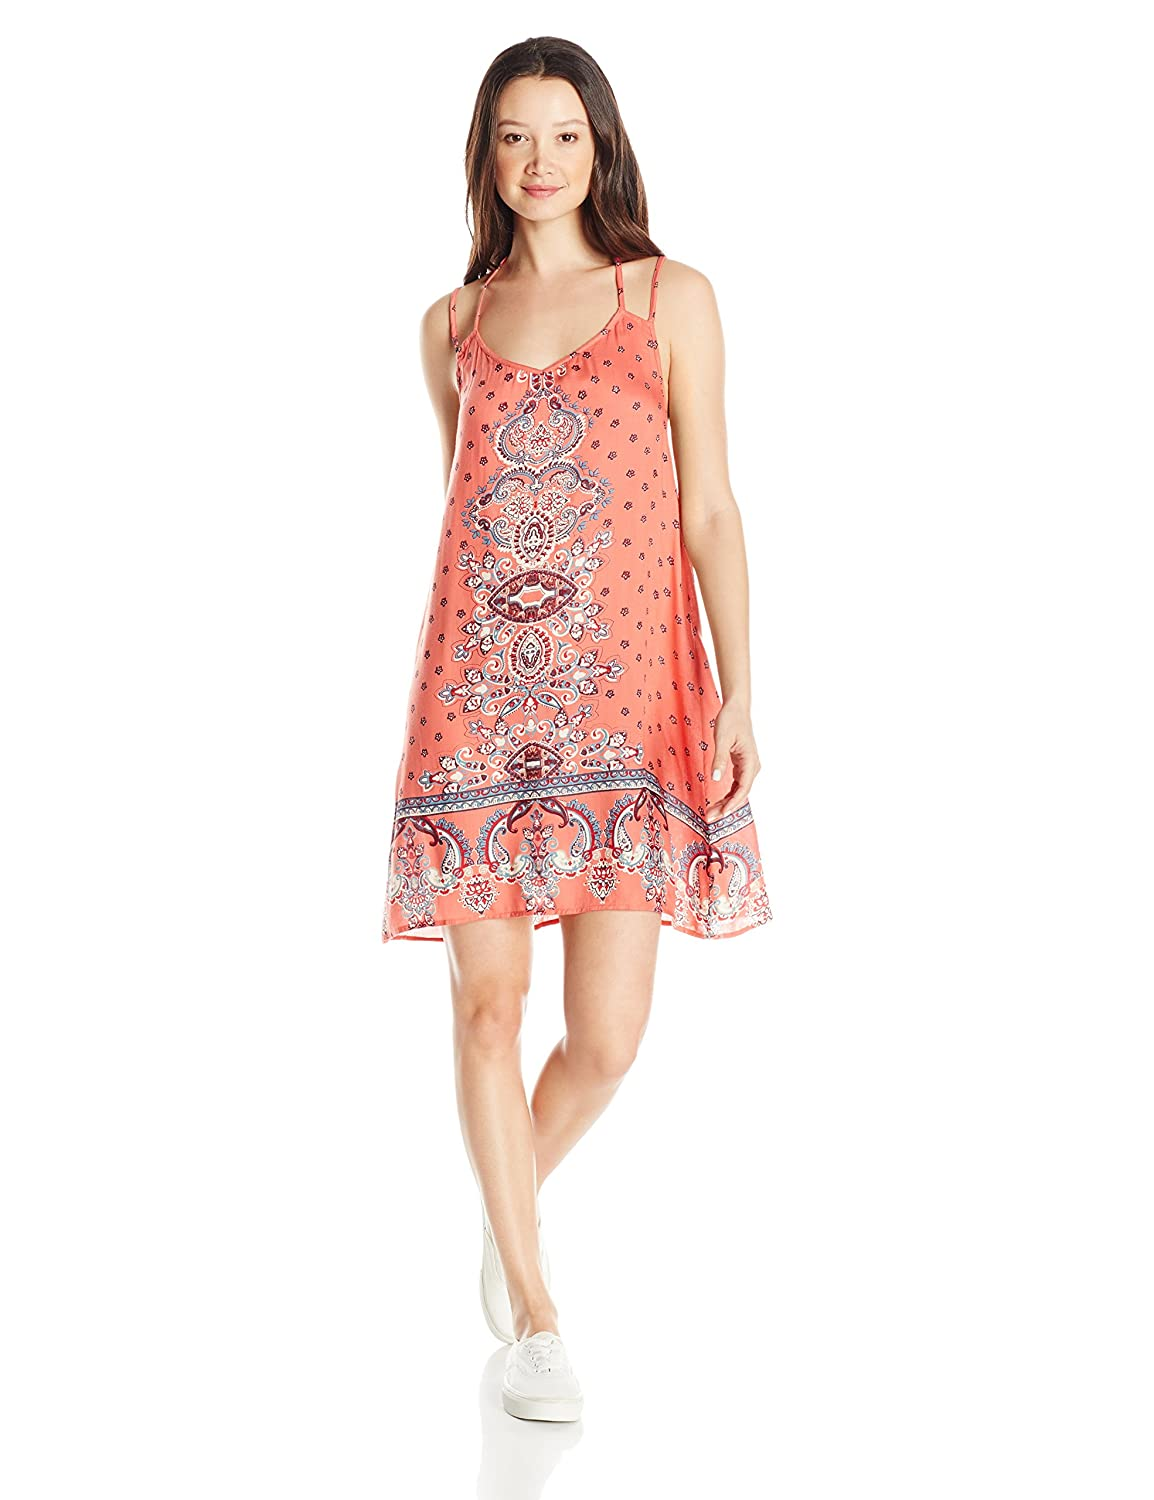 244fe97bdbf Angie Women s Double Strap Printed Sundress at Amazon Women s Clothing  store